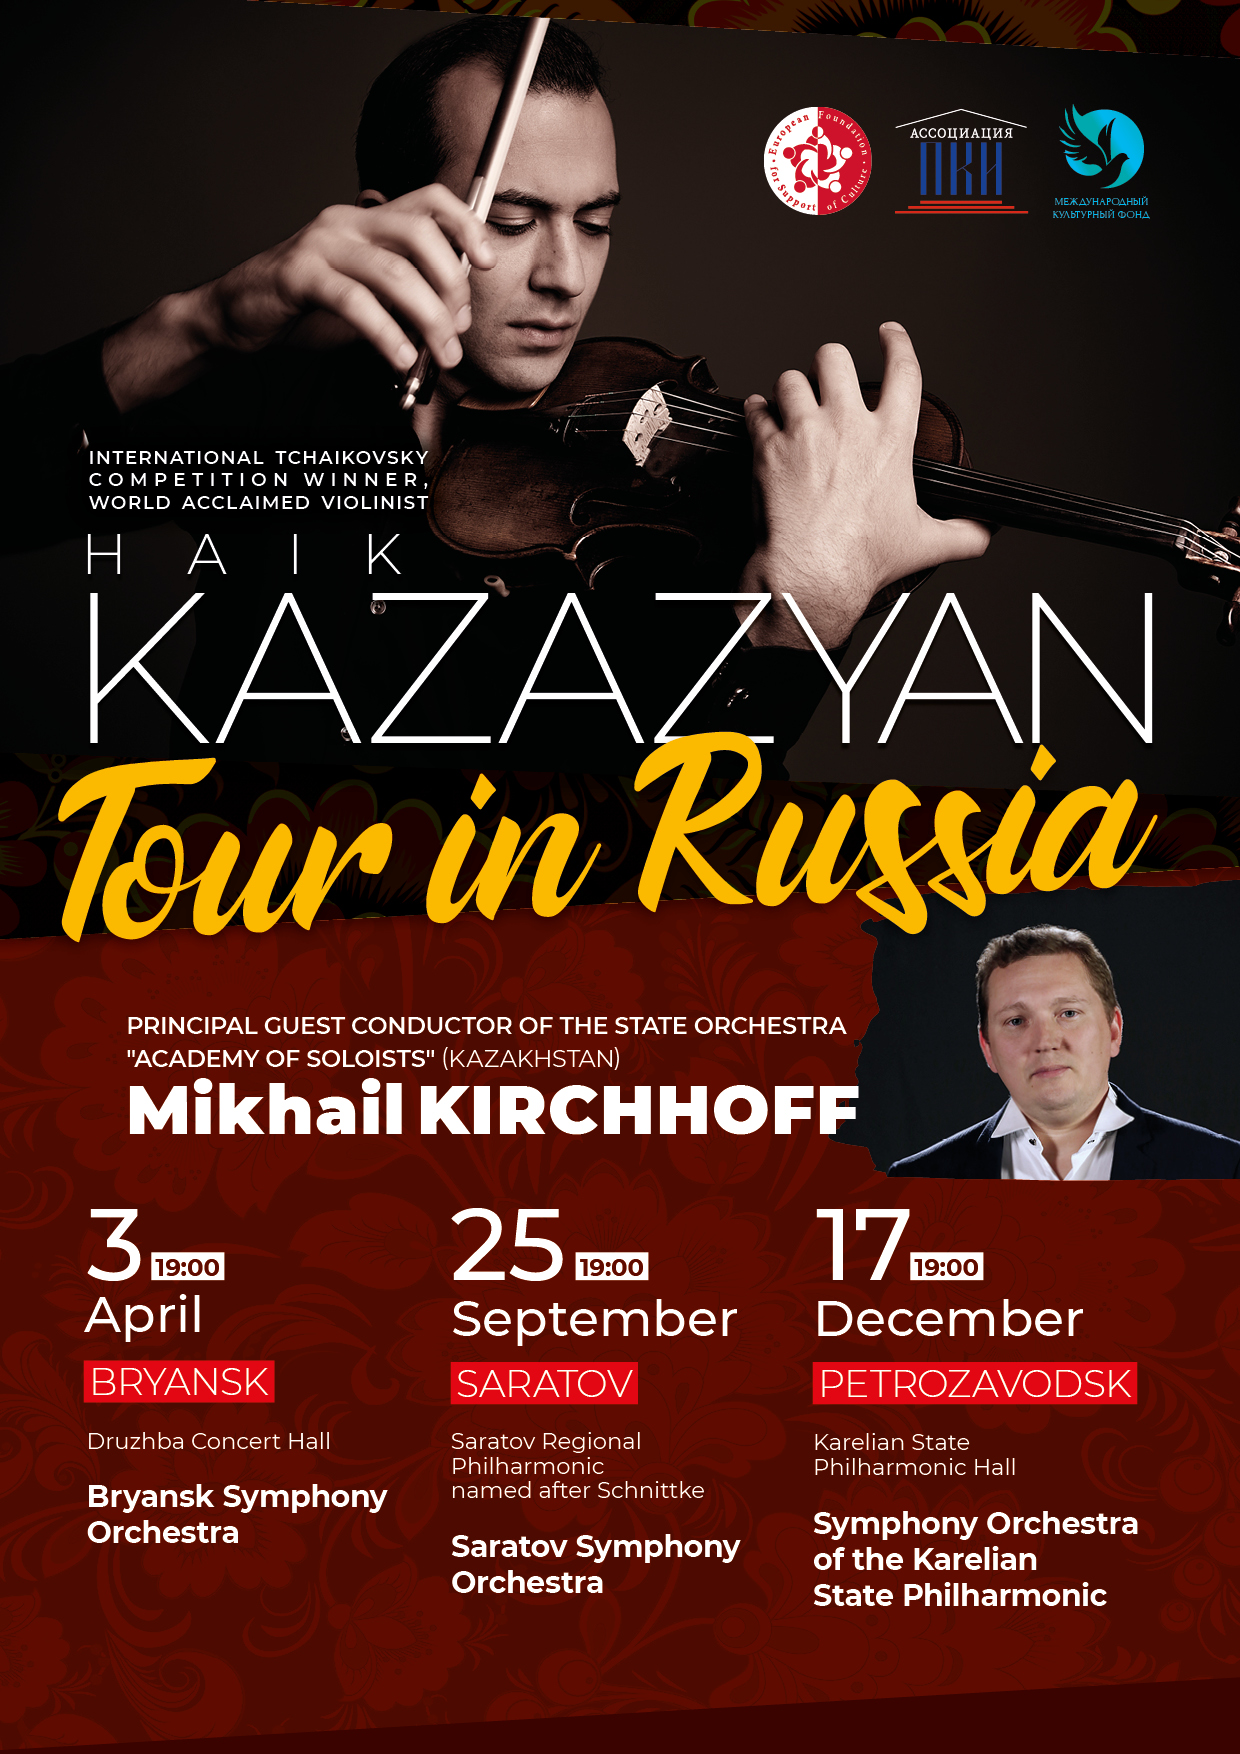 Haik+Kazazyan+Tour+in+Russian (1)